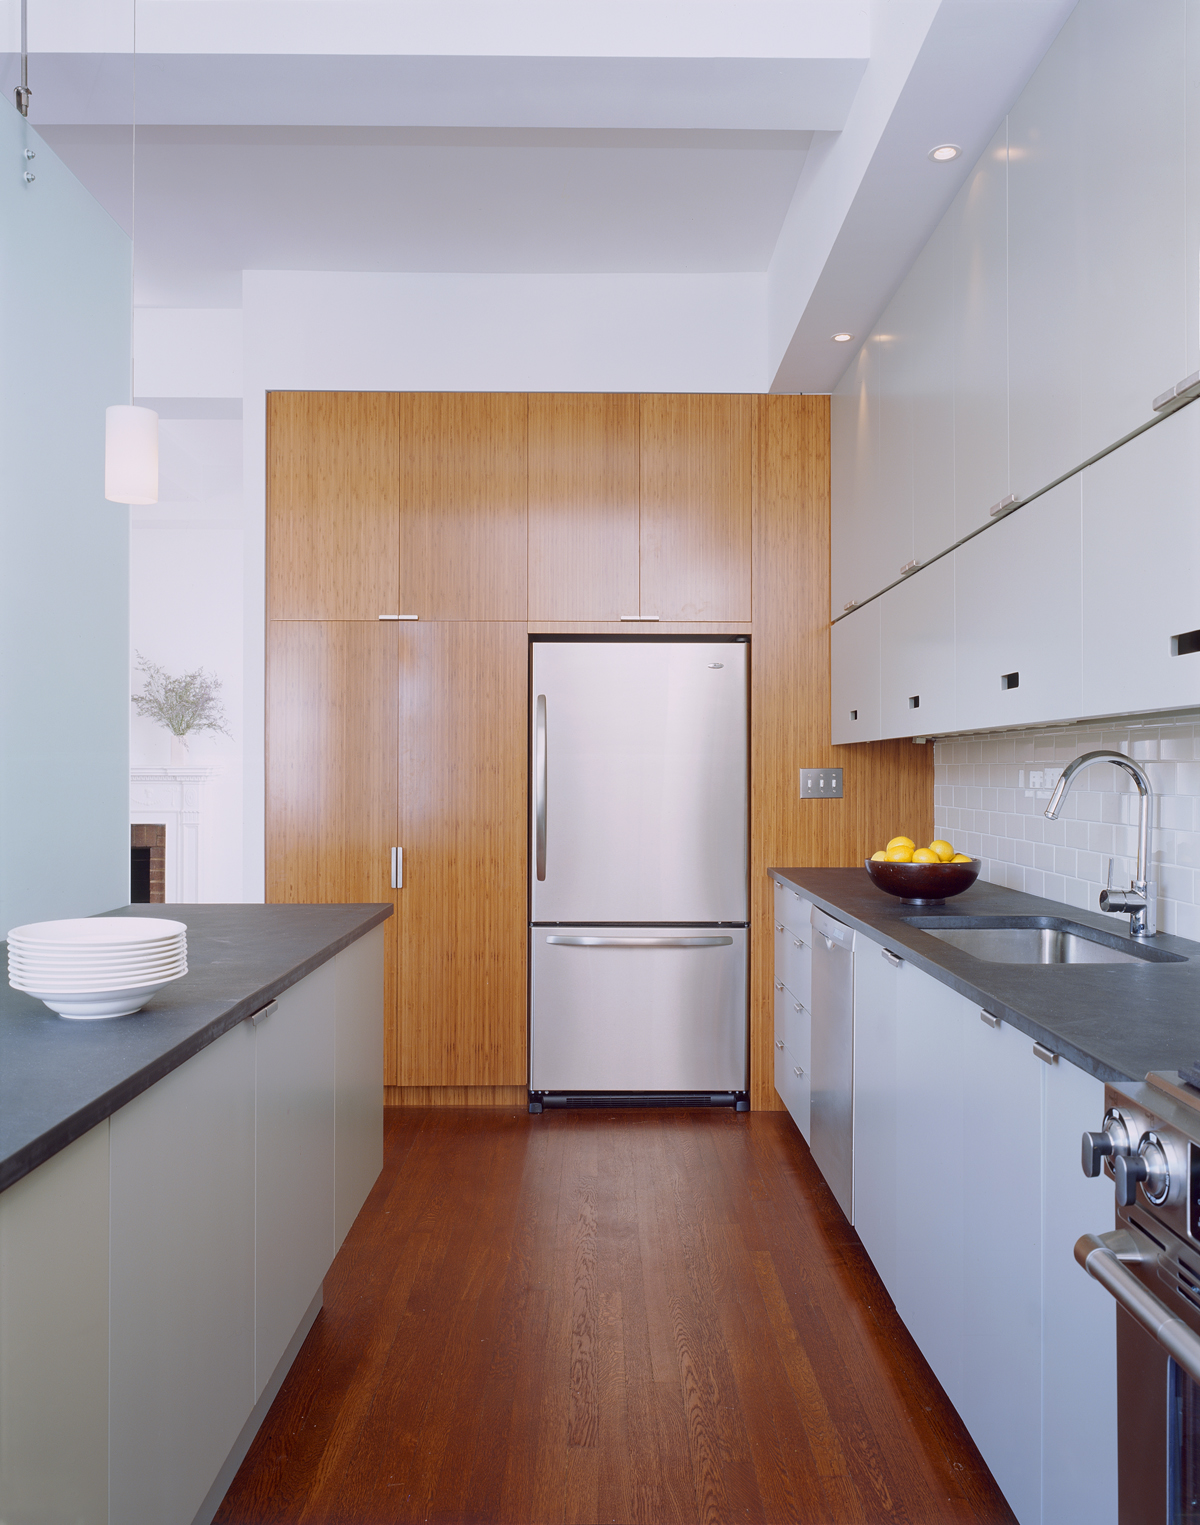 New York architects created bright kitchen